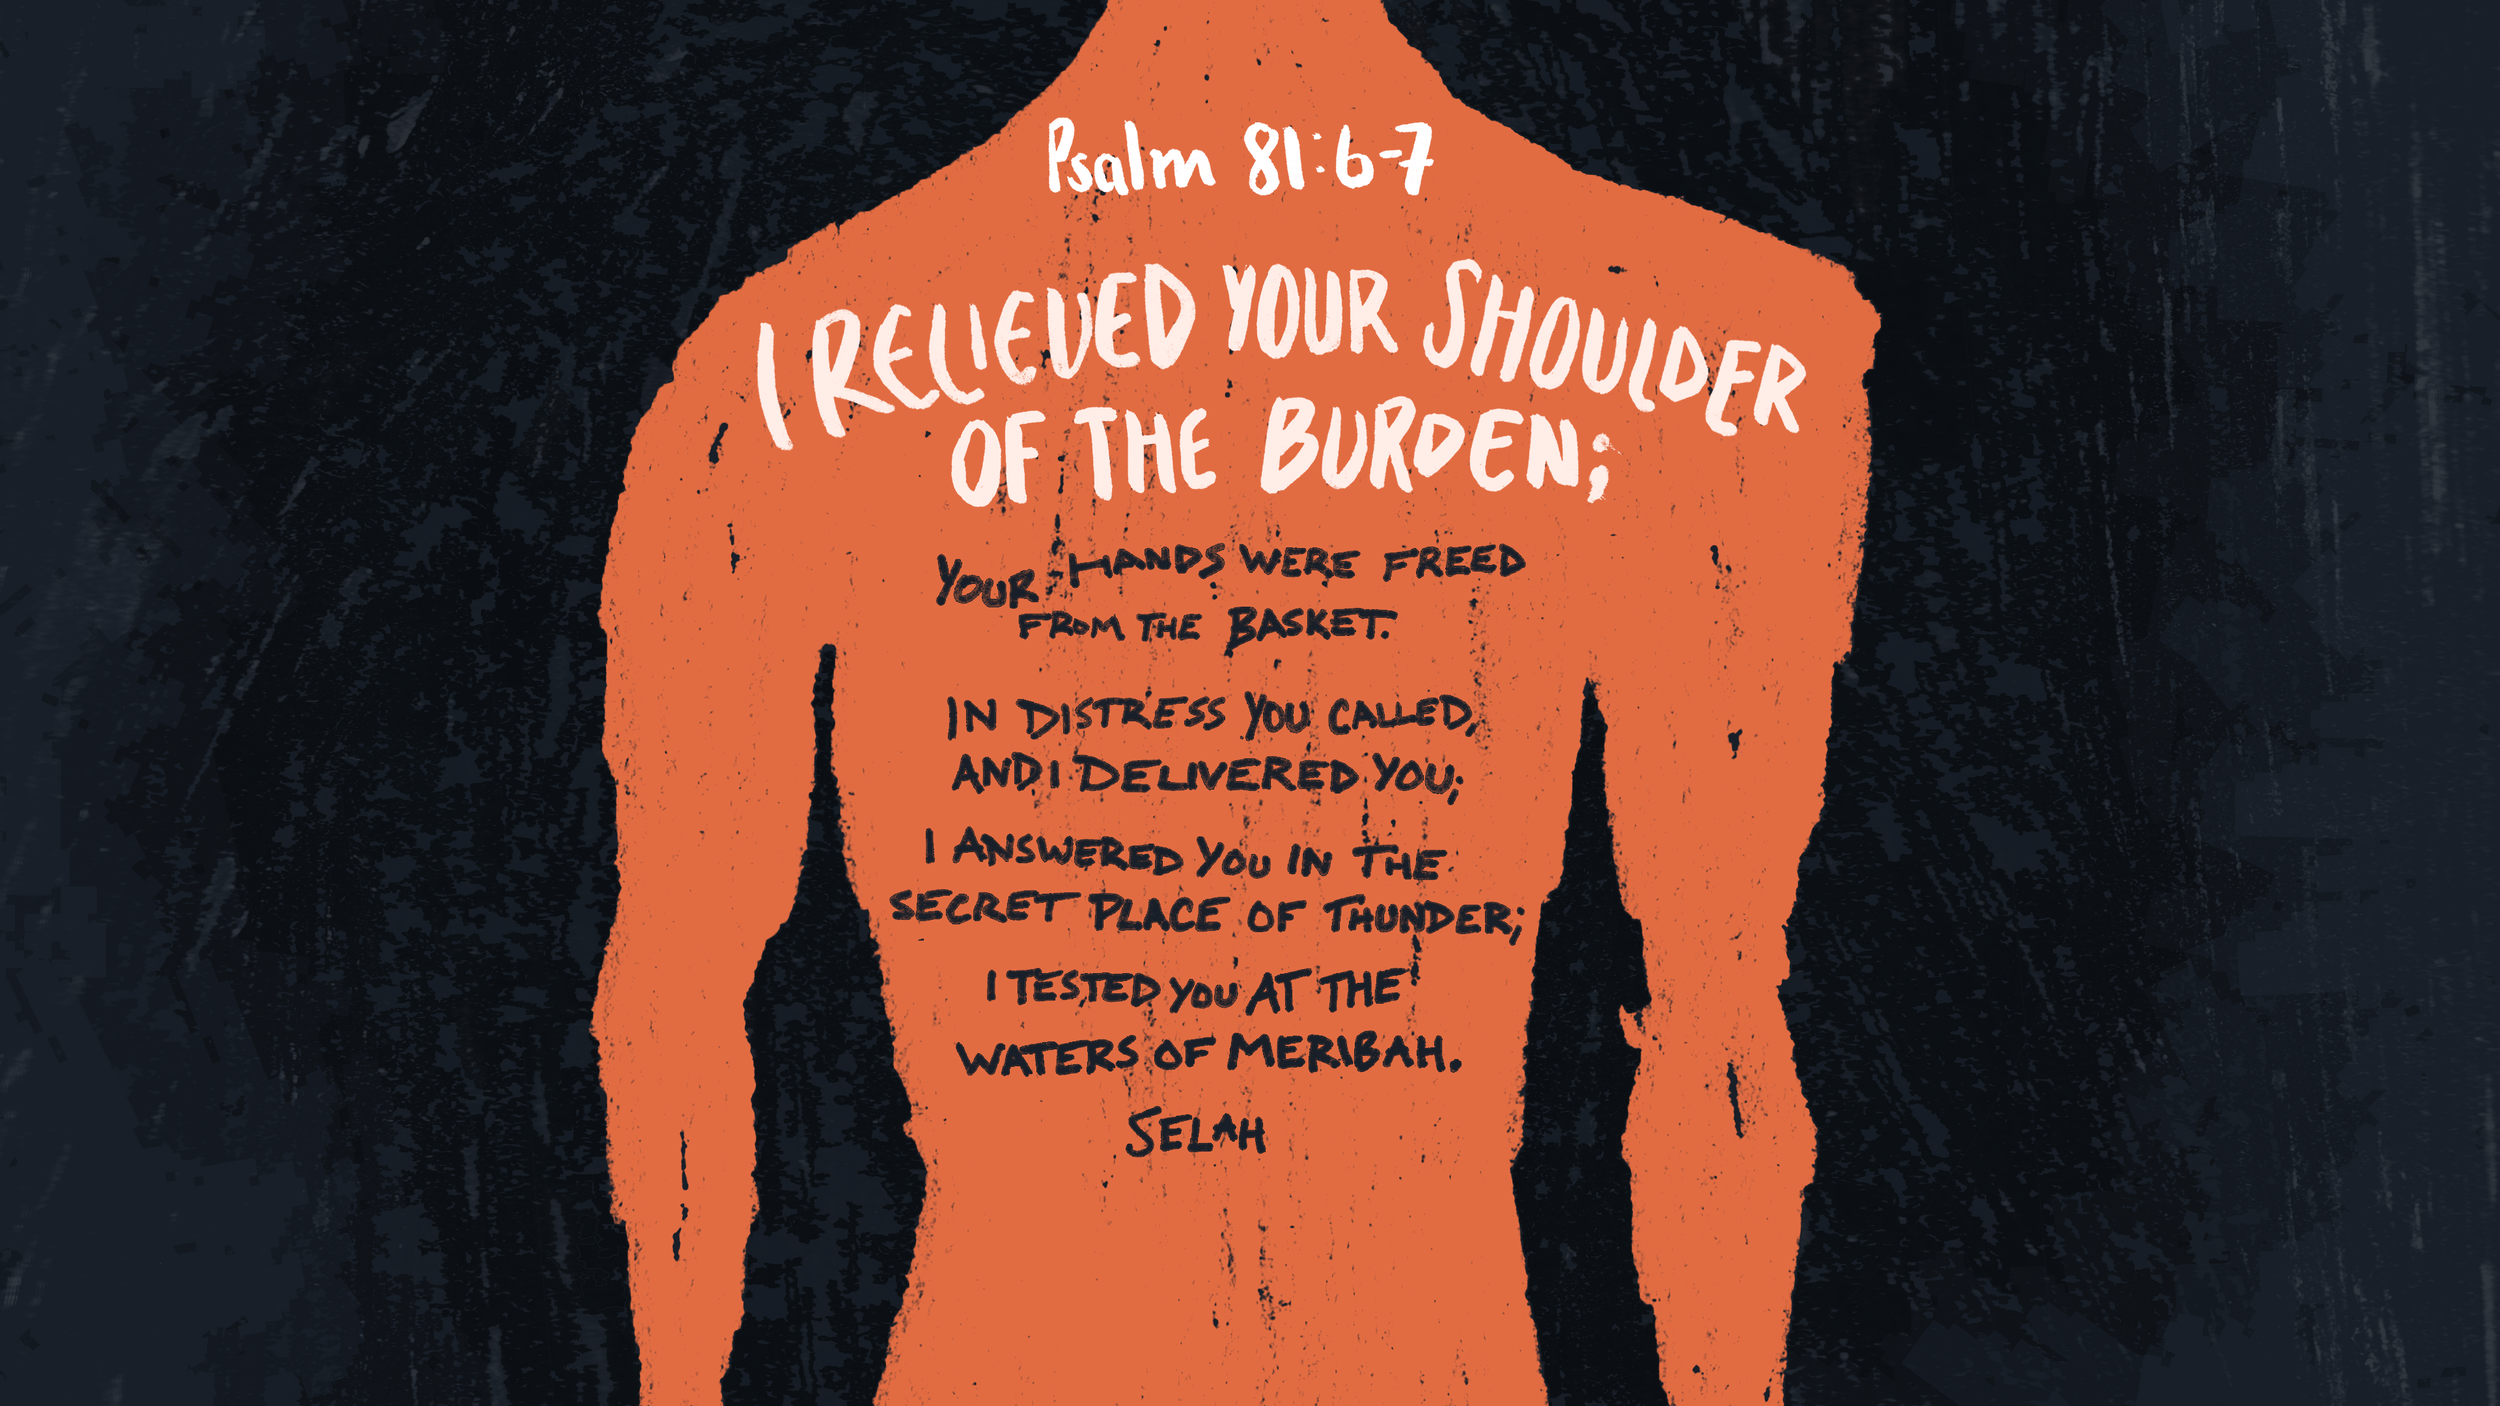 Psalm_81_6-7-3840x2160.png